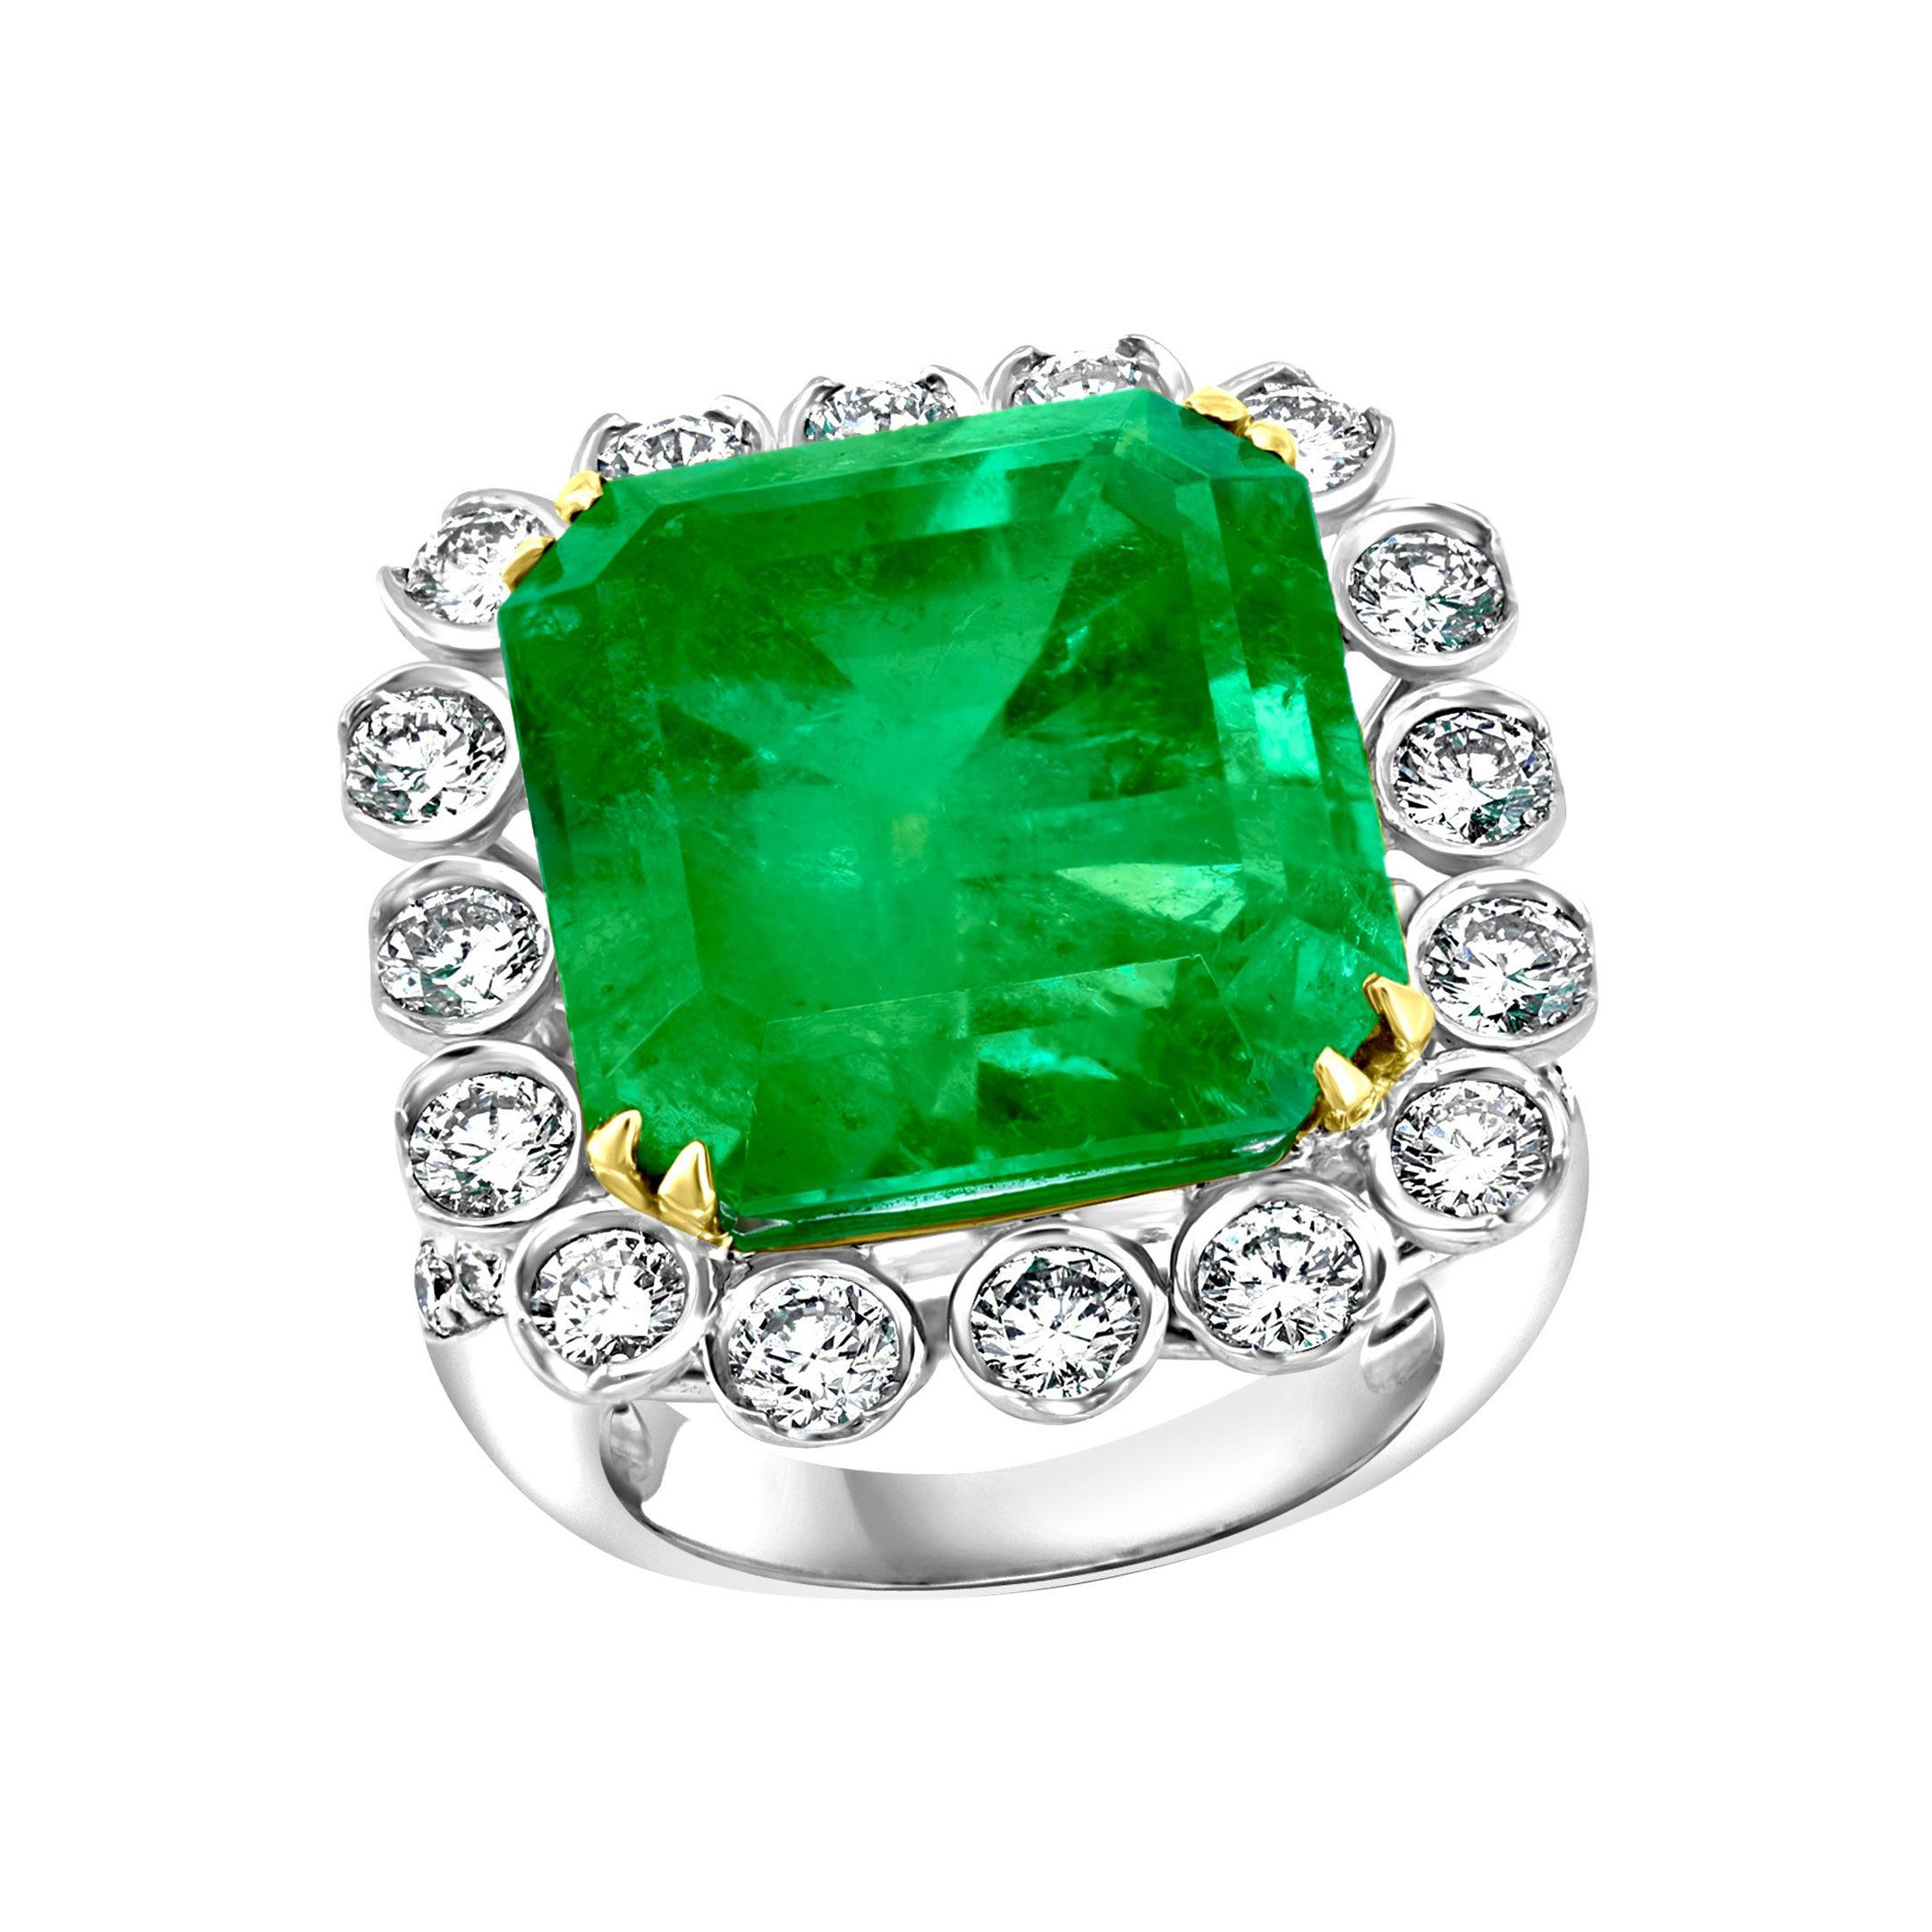 AGL Certified Minor 20 Ct Emerald Cut Colombian Emerald Diamond Platinum Ring